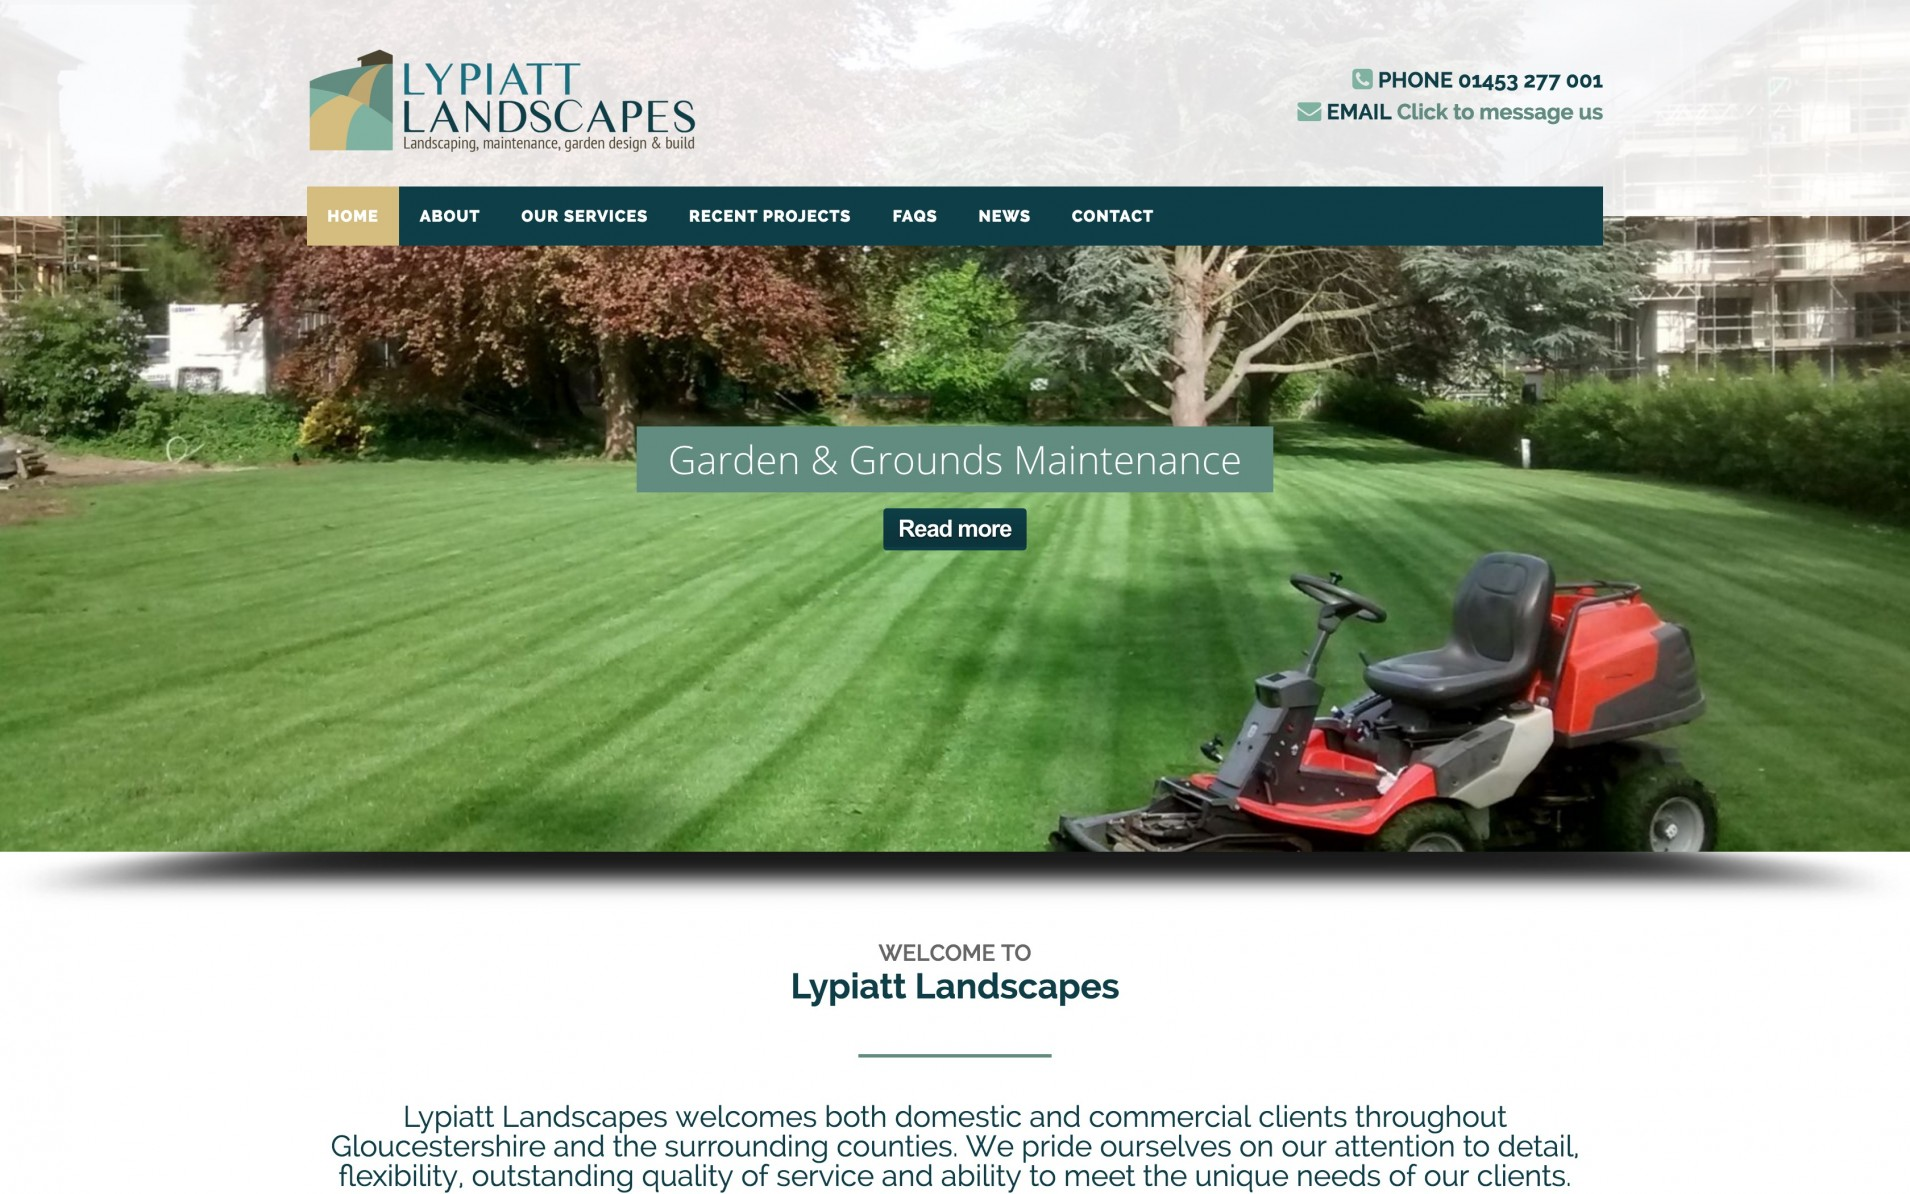 Screen Shot 2016 04 14 at 10.32.32 - Branding & web design for landscape gardening company